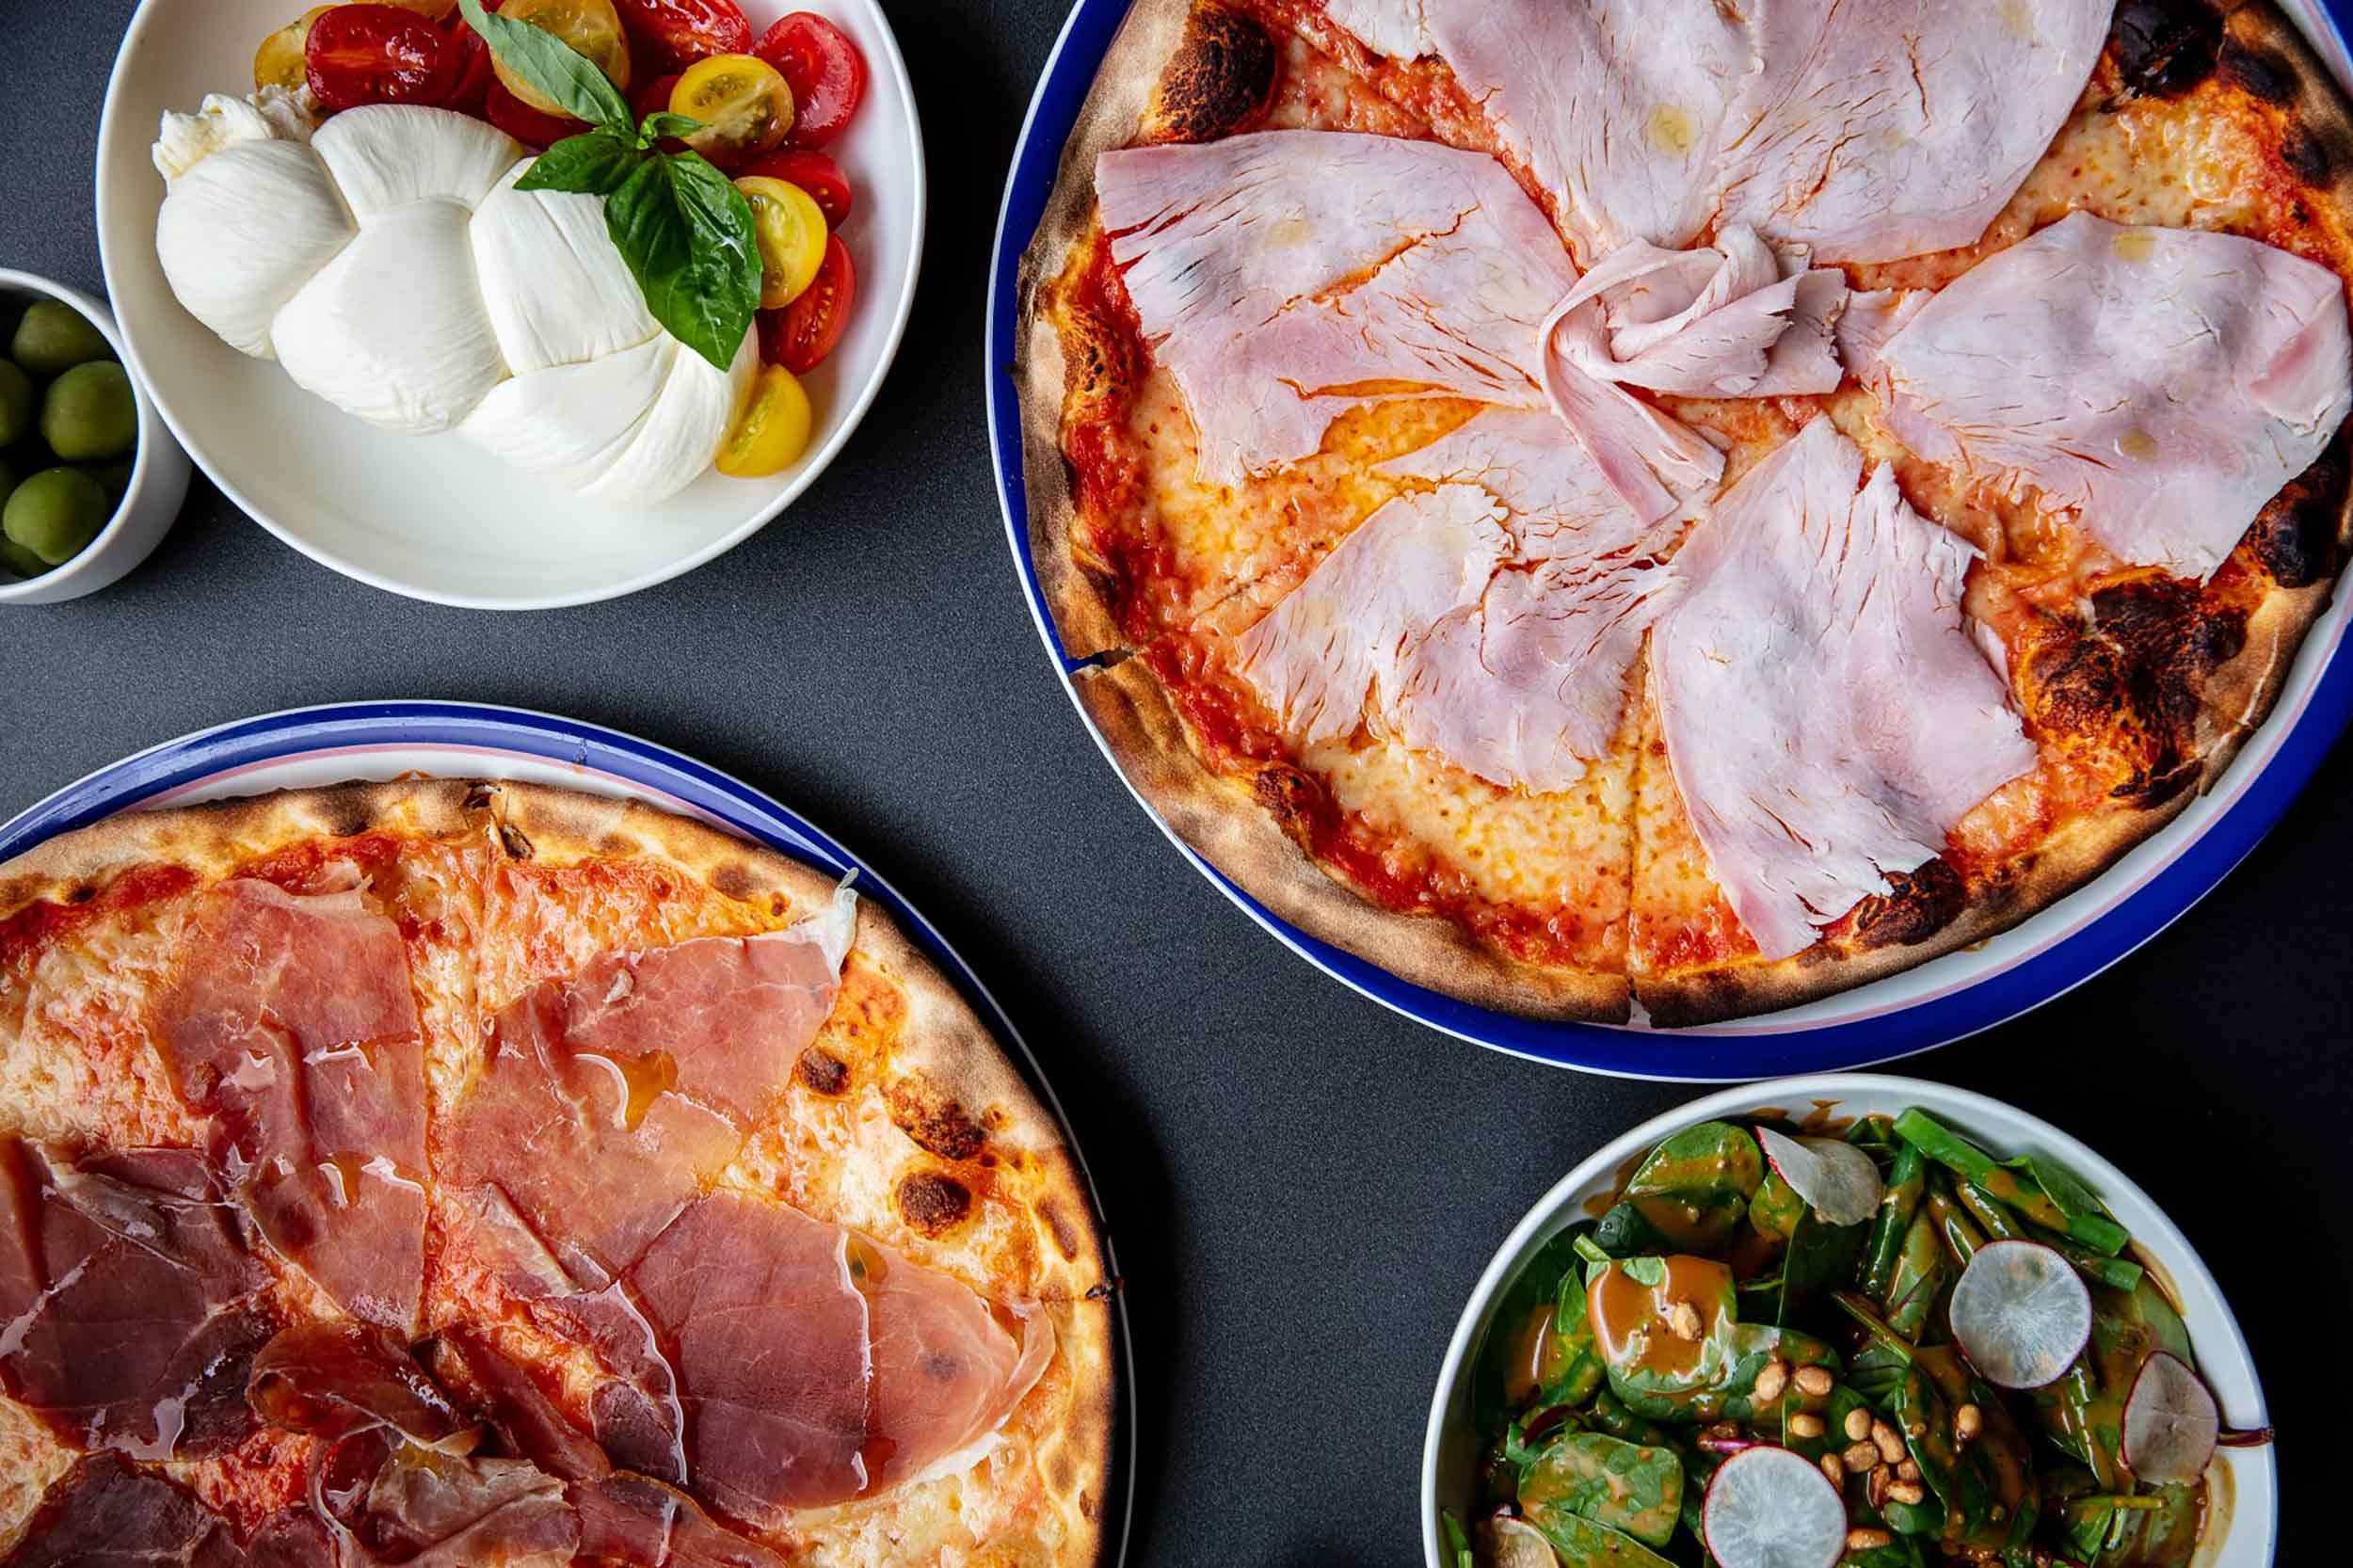 Top down view on pizzas and sides.